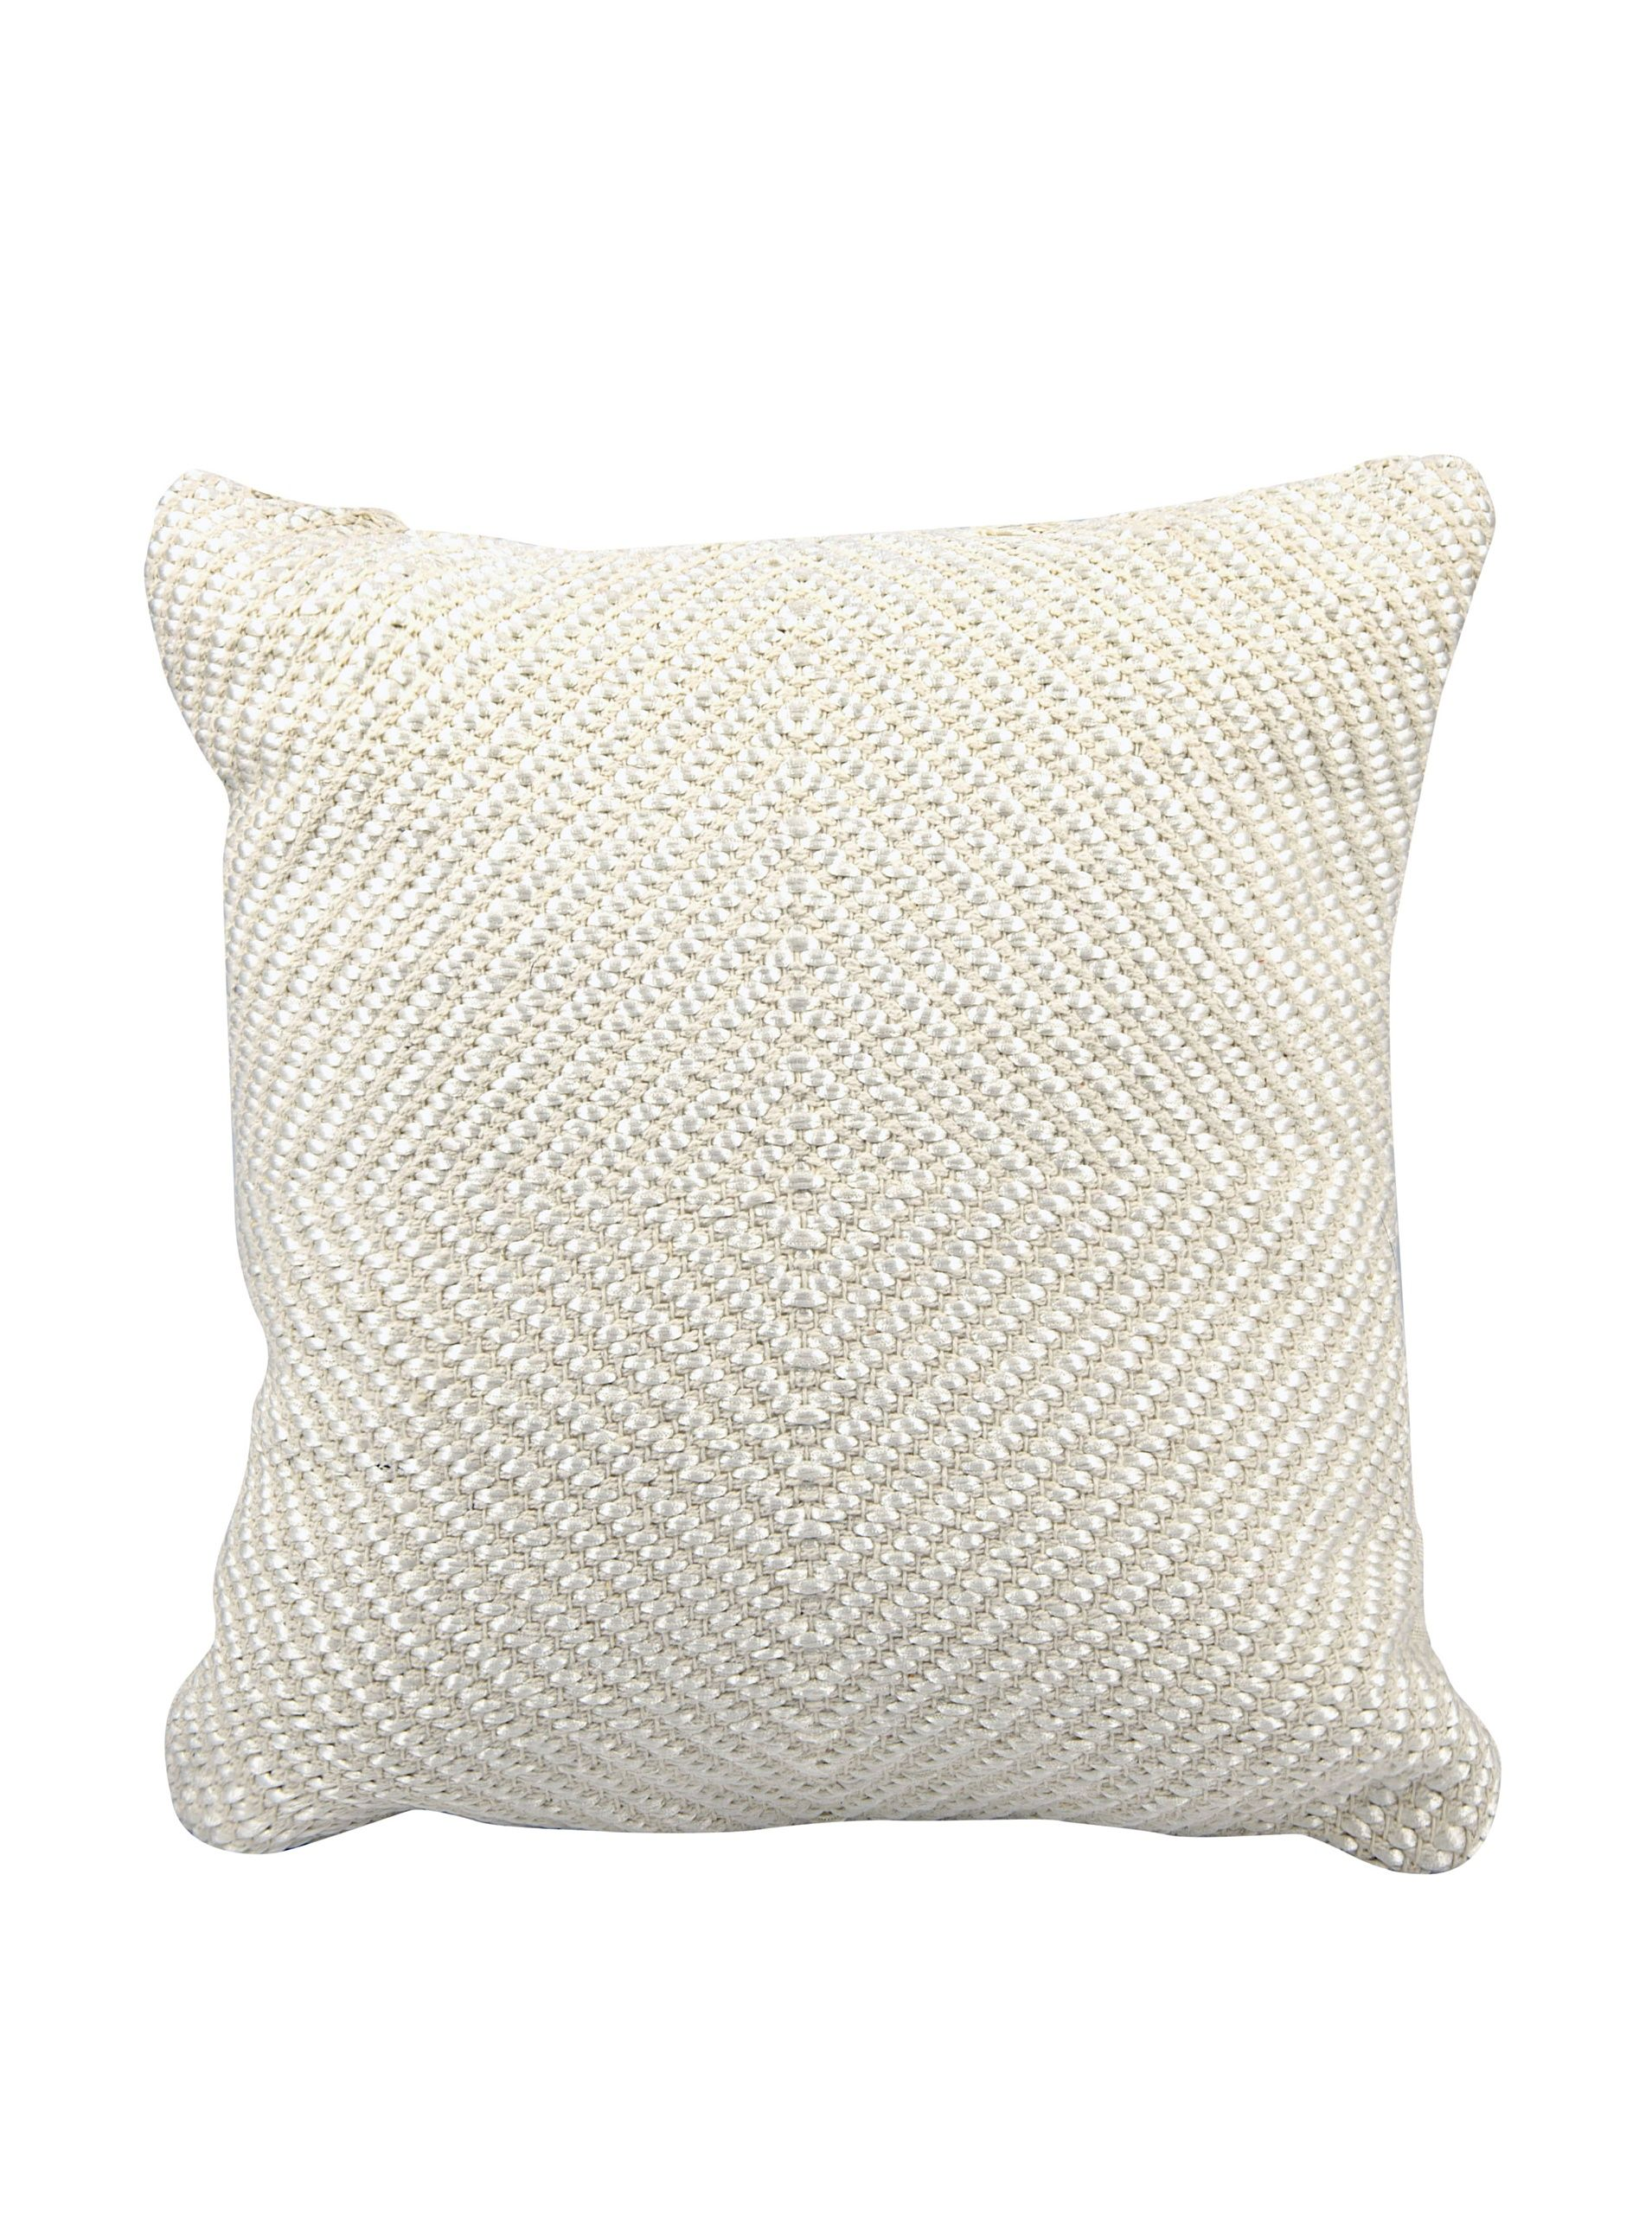 """Joseph Abboud Woven Luster Pillow, Ivory, 16"""" x 16"""" Add texture and pattern with this tonal design; features zipper closure with removable 100% polyester insert PillowHome #Bed"""